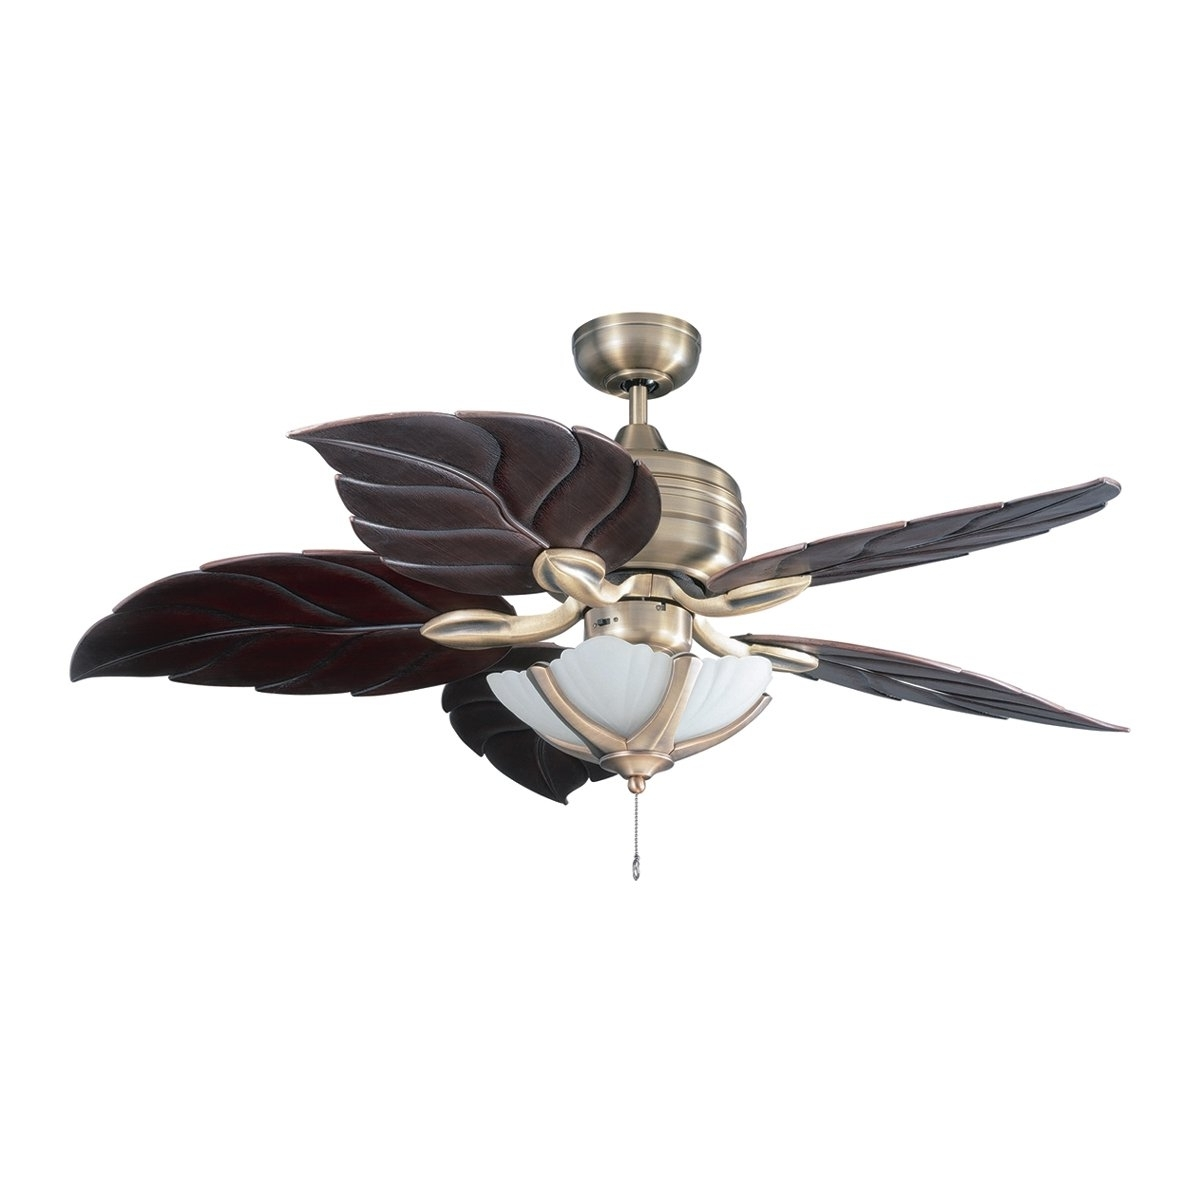 Ceiling Fans : Fancy Leaf Ceiling Fan With Light For Your Kit Baby Intended For Well Known Outdoor Ceiling Fans With Tropical Lights (View 15 of 20)